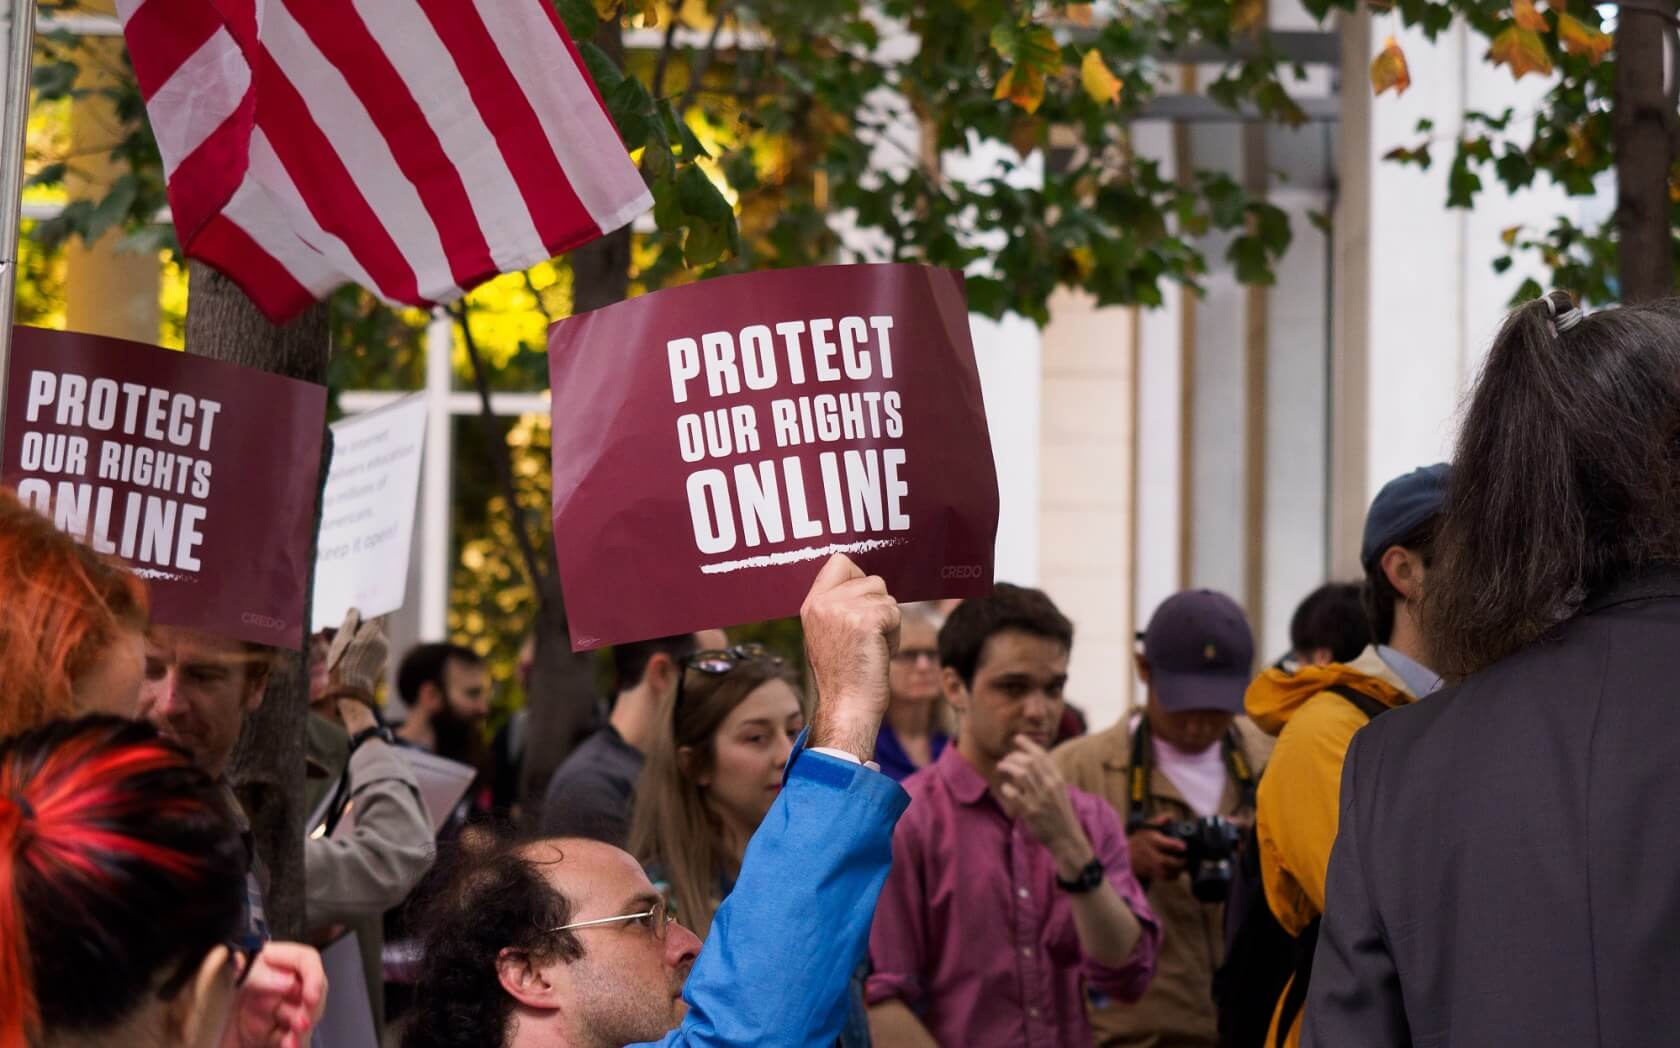 California's net neutrality law has been put on hold